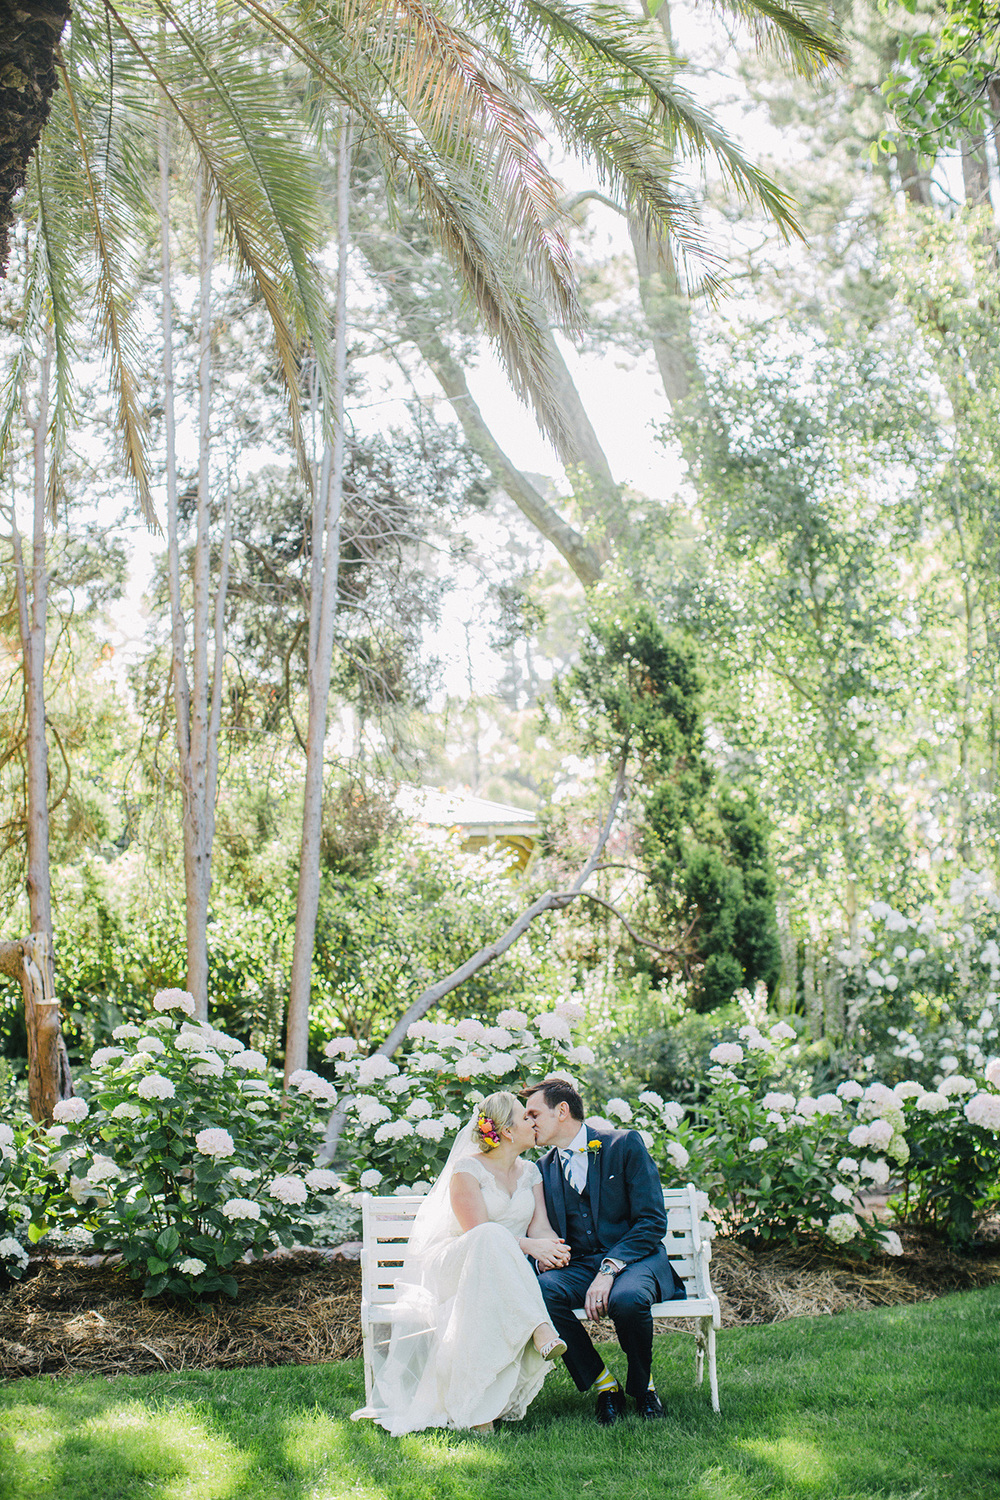 Hopewood House - Wedding Day Gallery - Lisa and Mark - At Dusk Photography -  Couple Kiss Garden Seat.jpeg